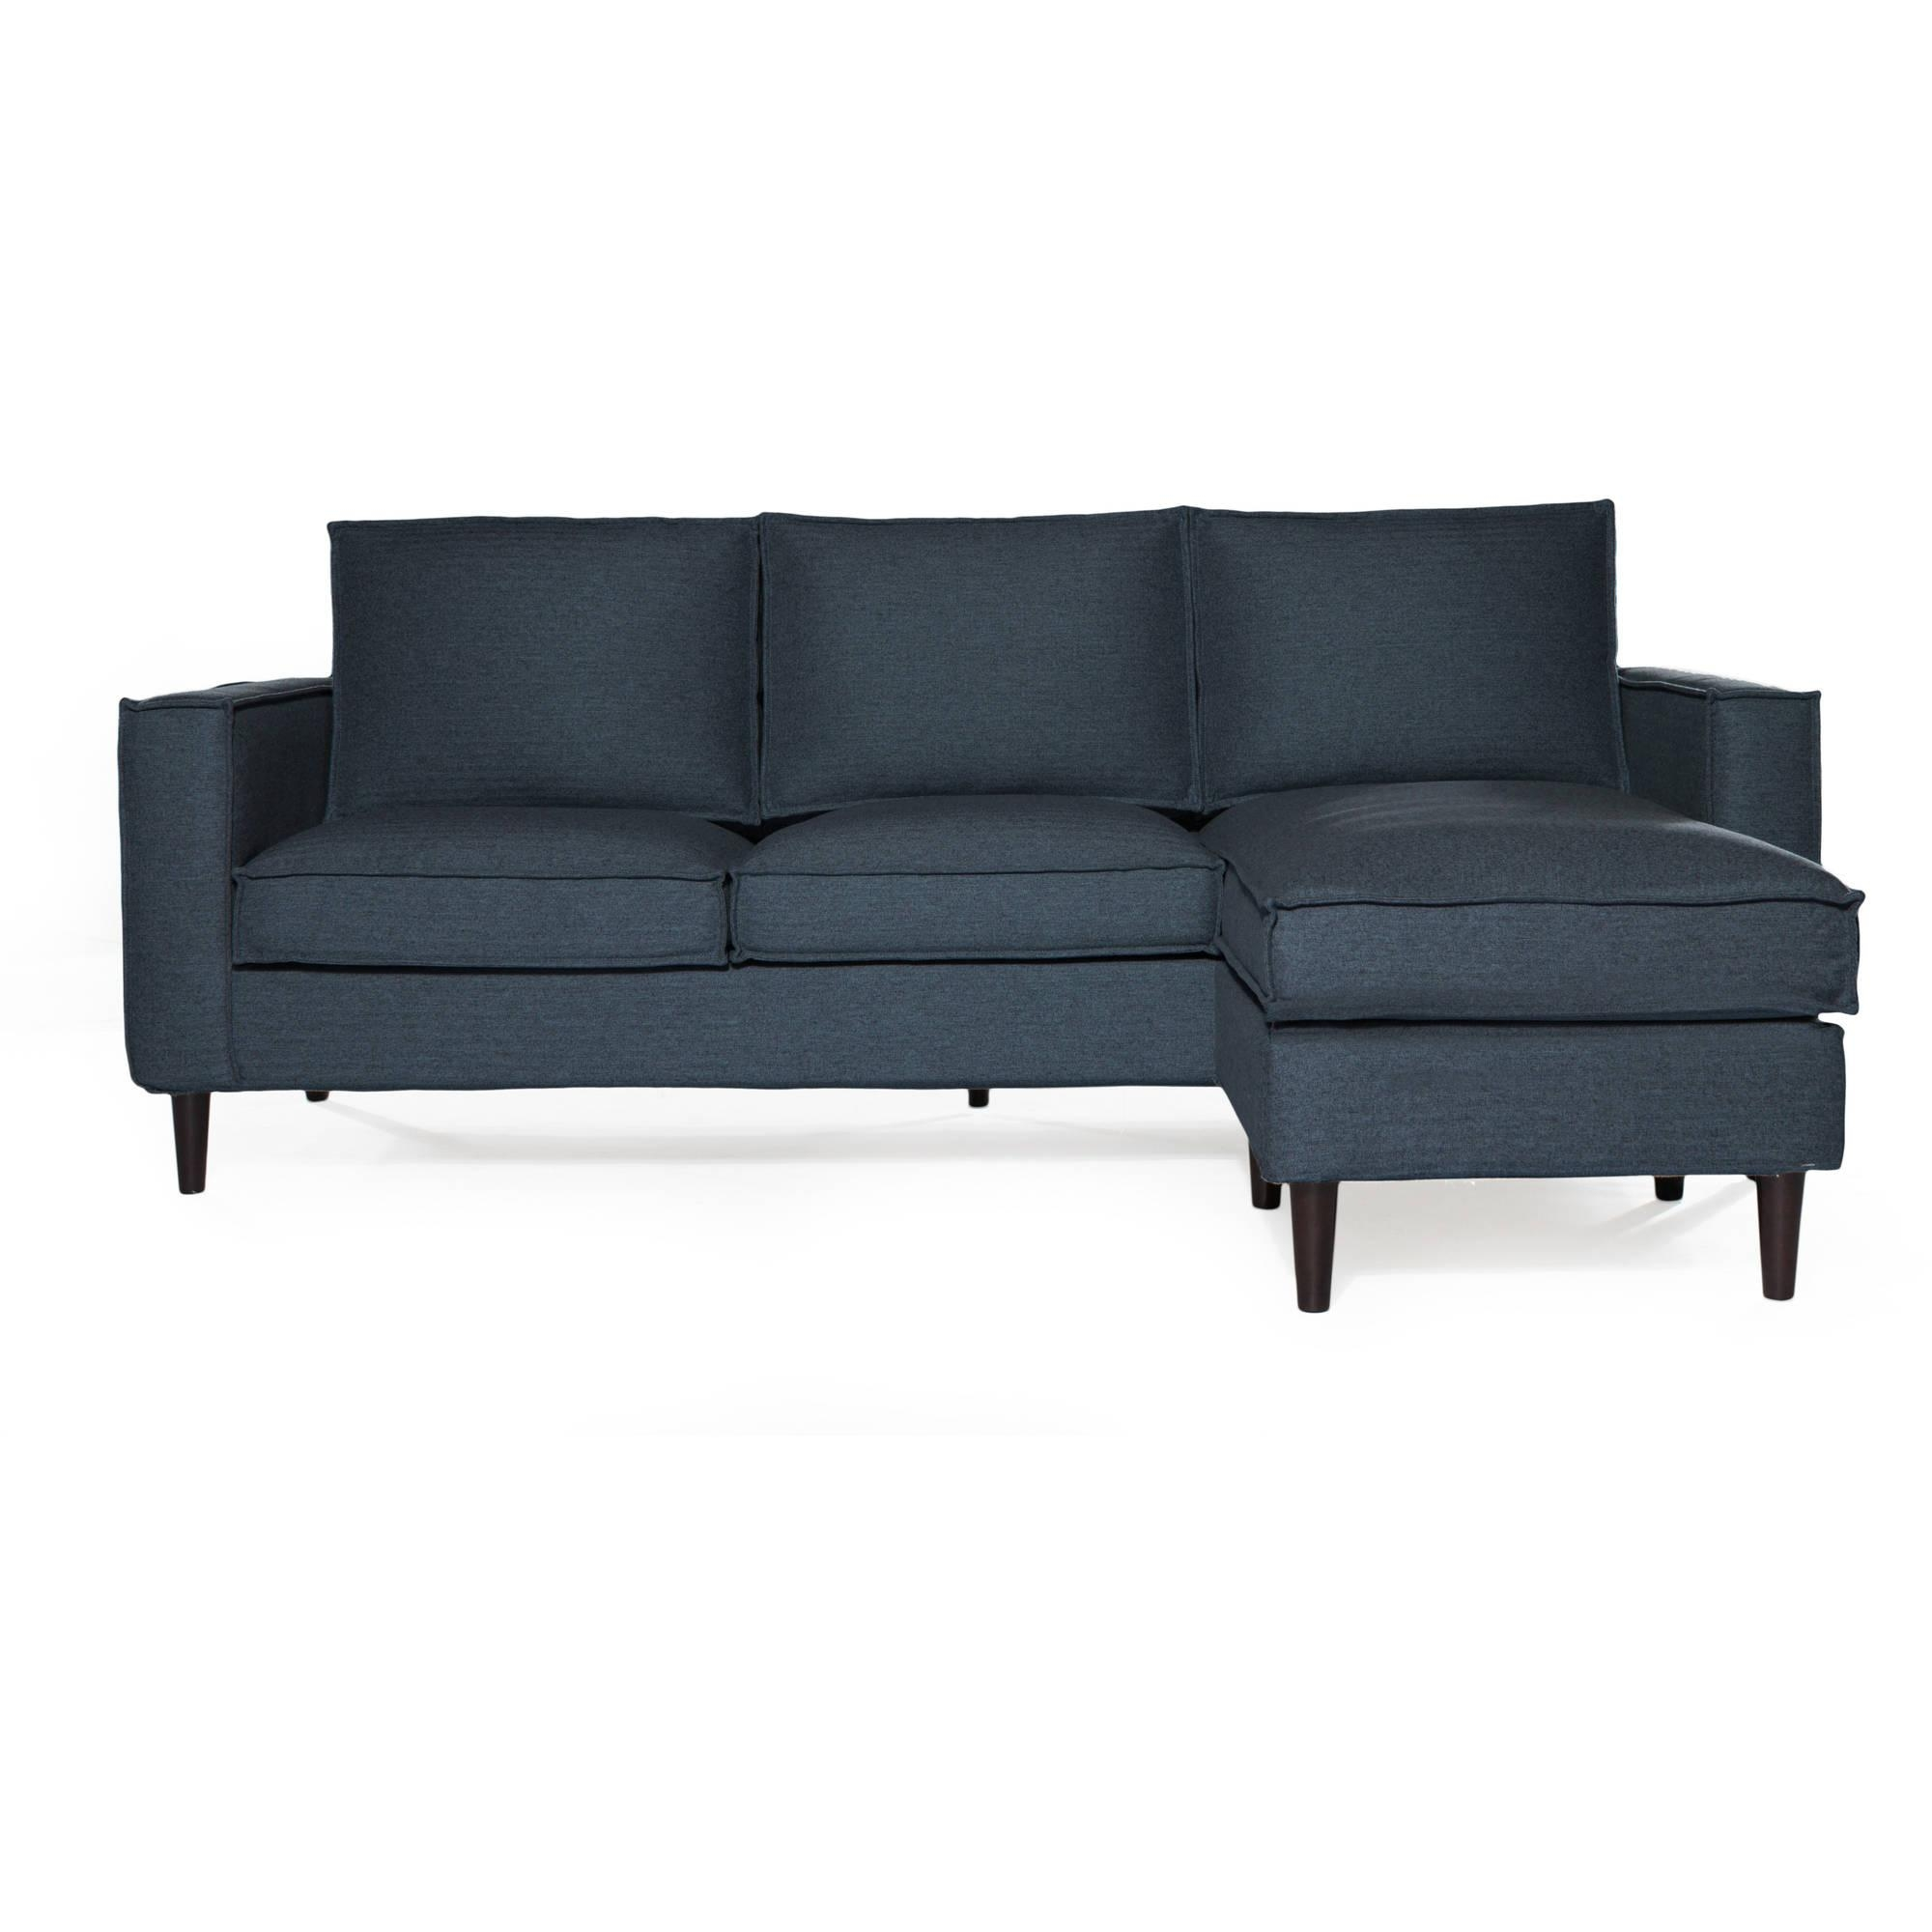 Sofas & Couches – Walmart For Big Sofas Sectionals (View 11 of 15)